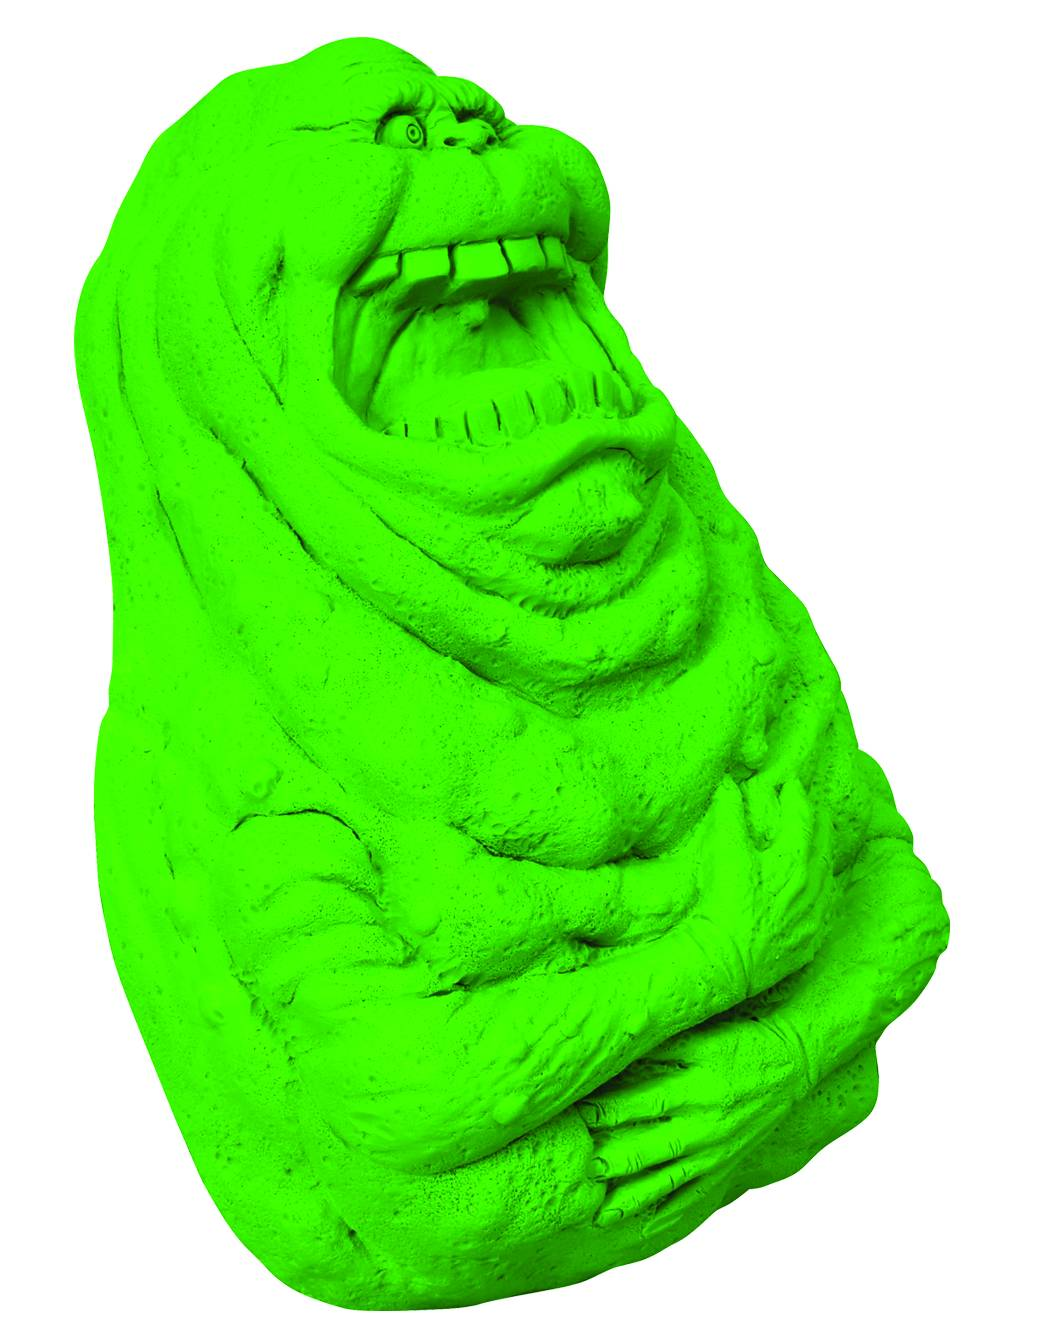 Ghostbusters Slimer Silicone Mold